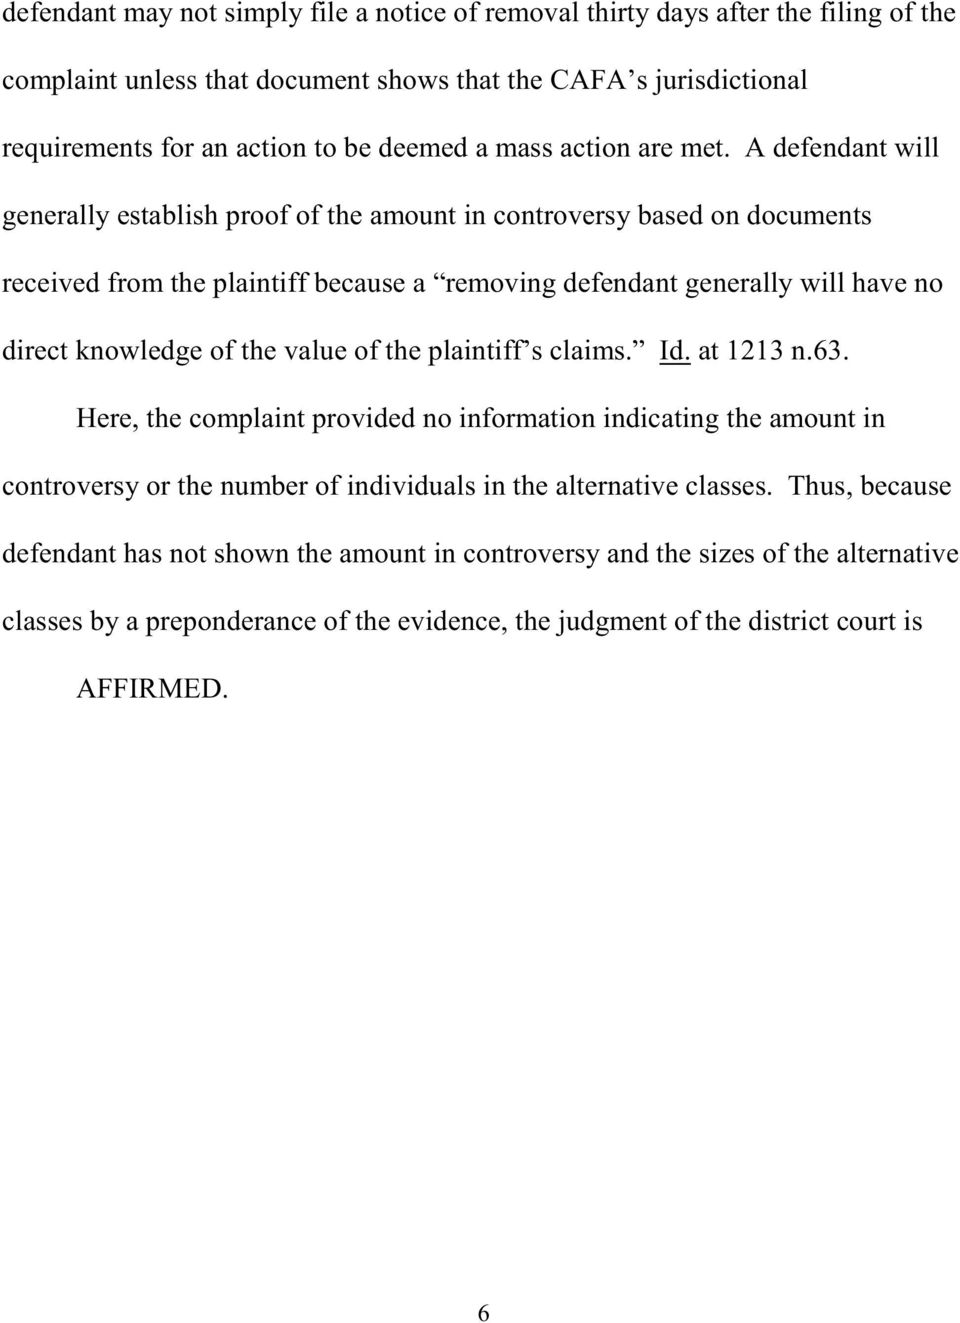 A defendant will generally establish proof of the amount in controversy based on documents received from the plaintiff because a removing defendant generally will have no direct knowledge of the